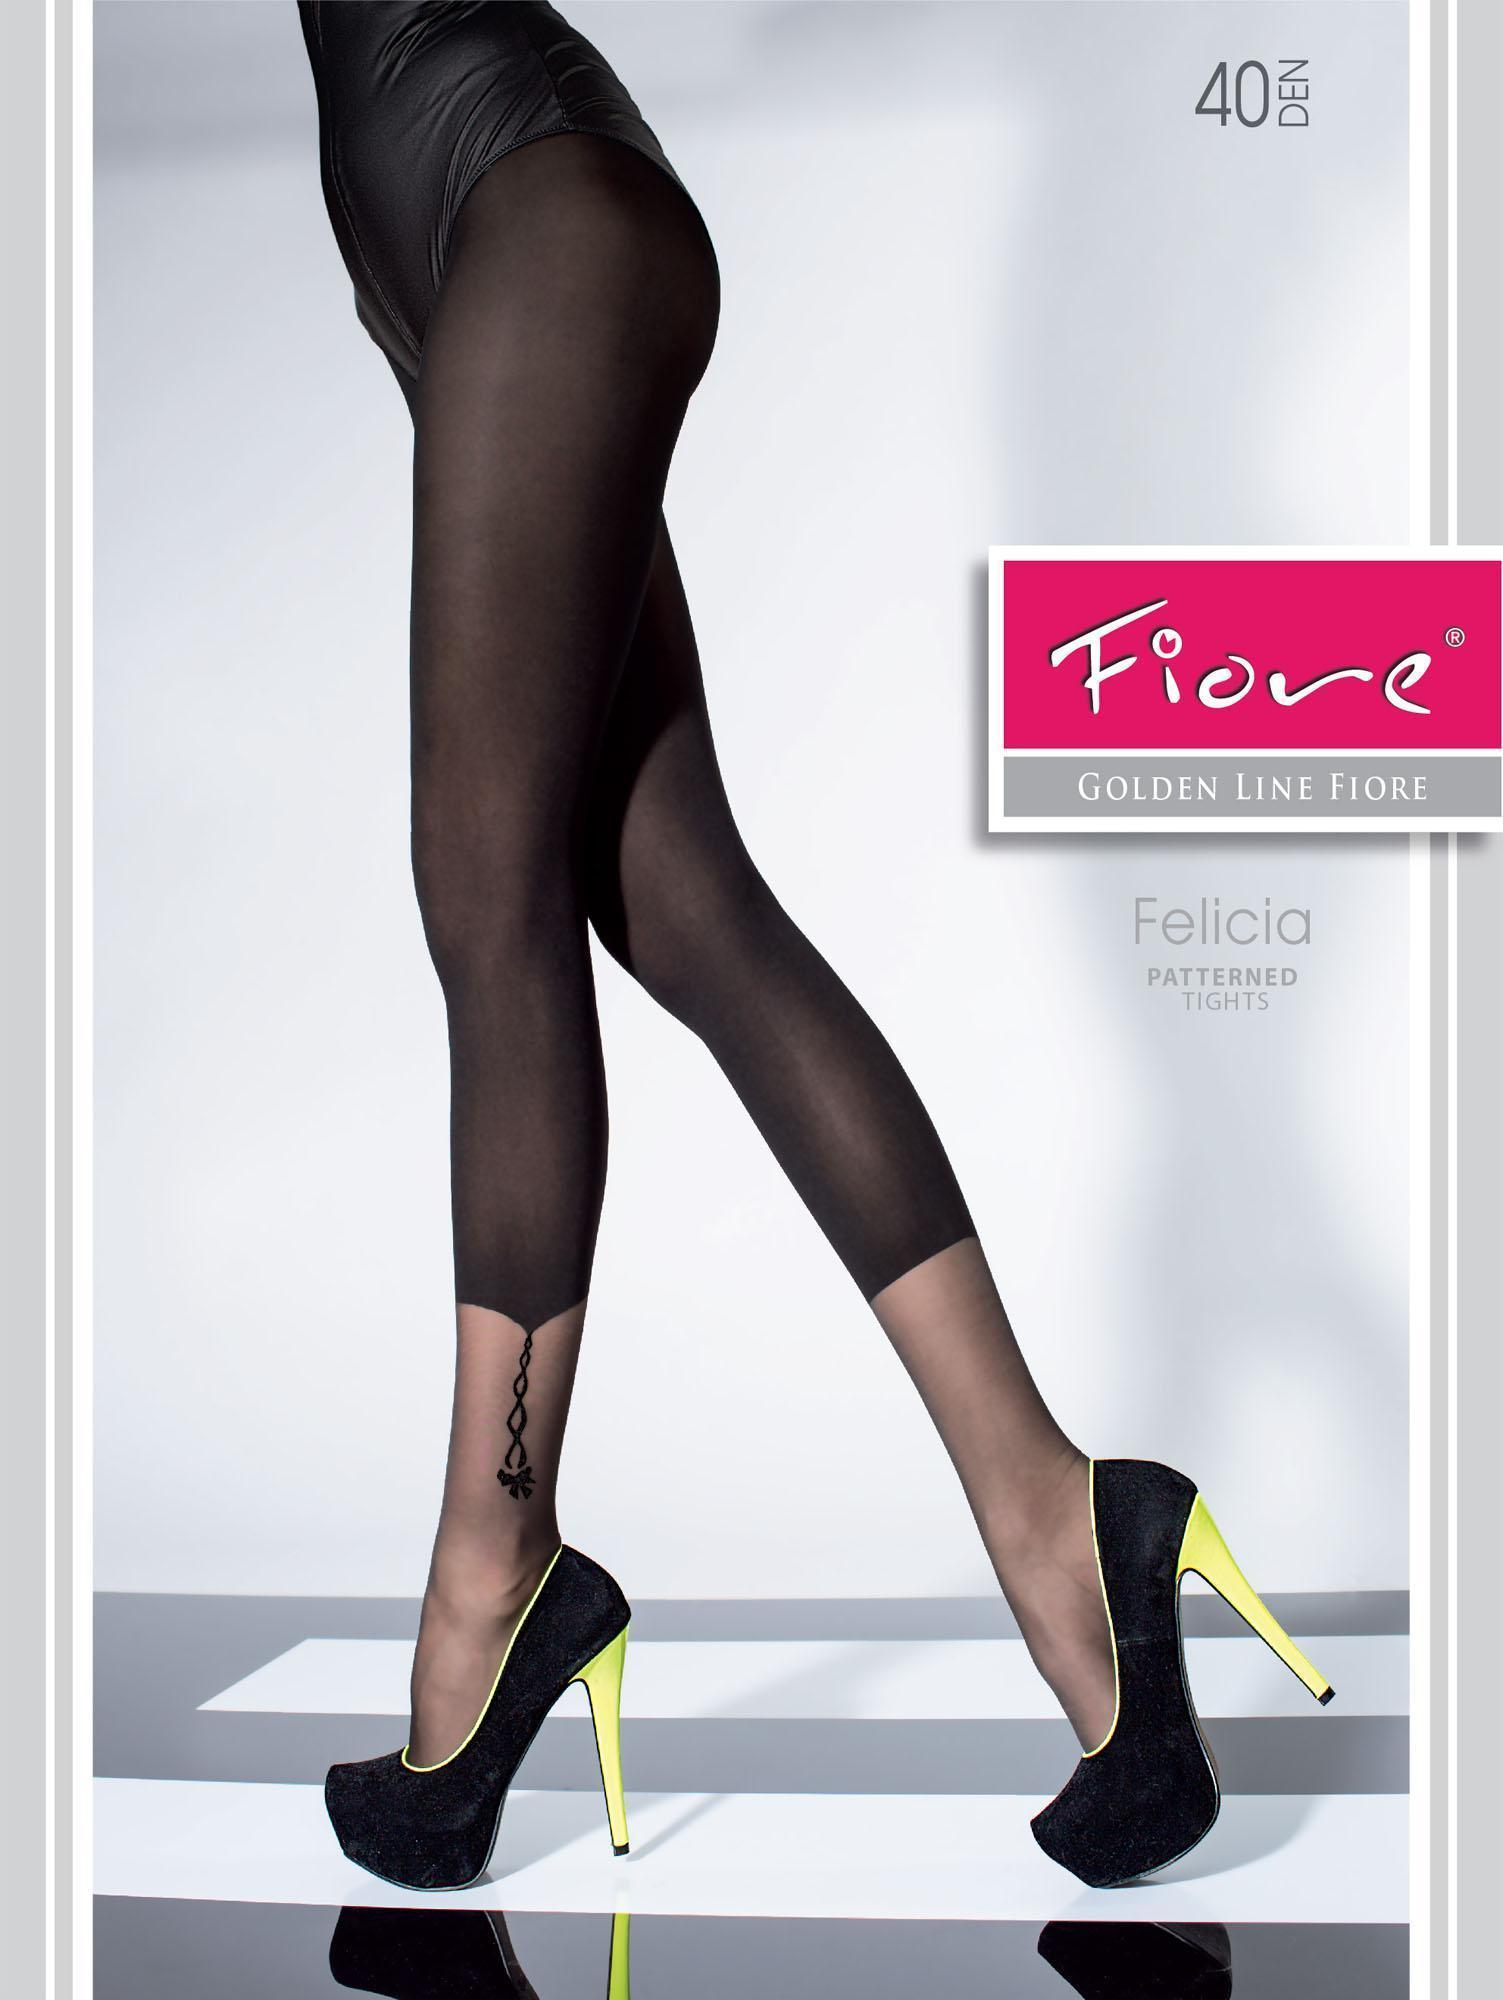 Fiore: Bejeweled Ankle Semi Opaque Tights SOLD OUT